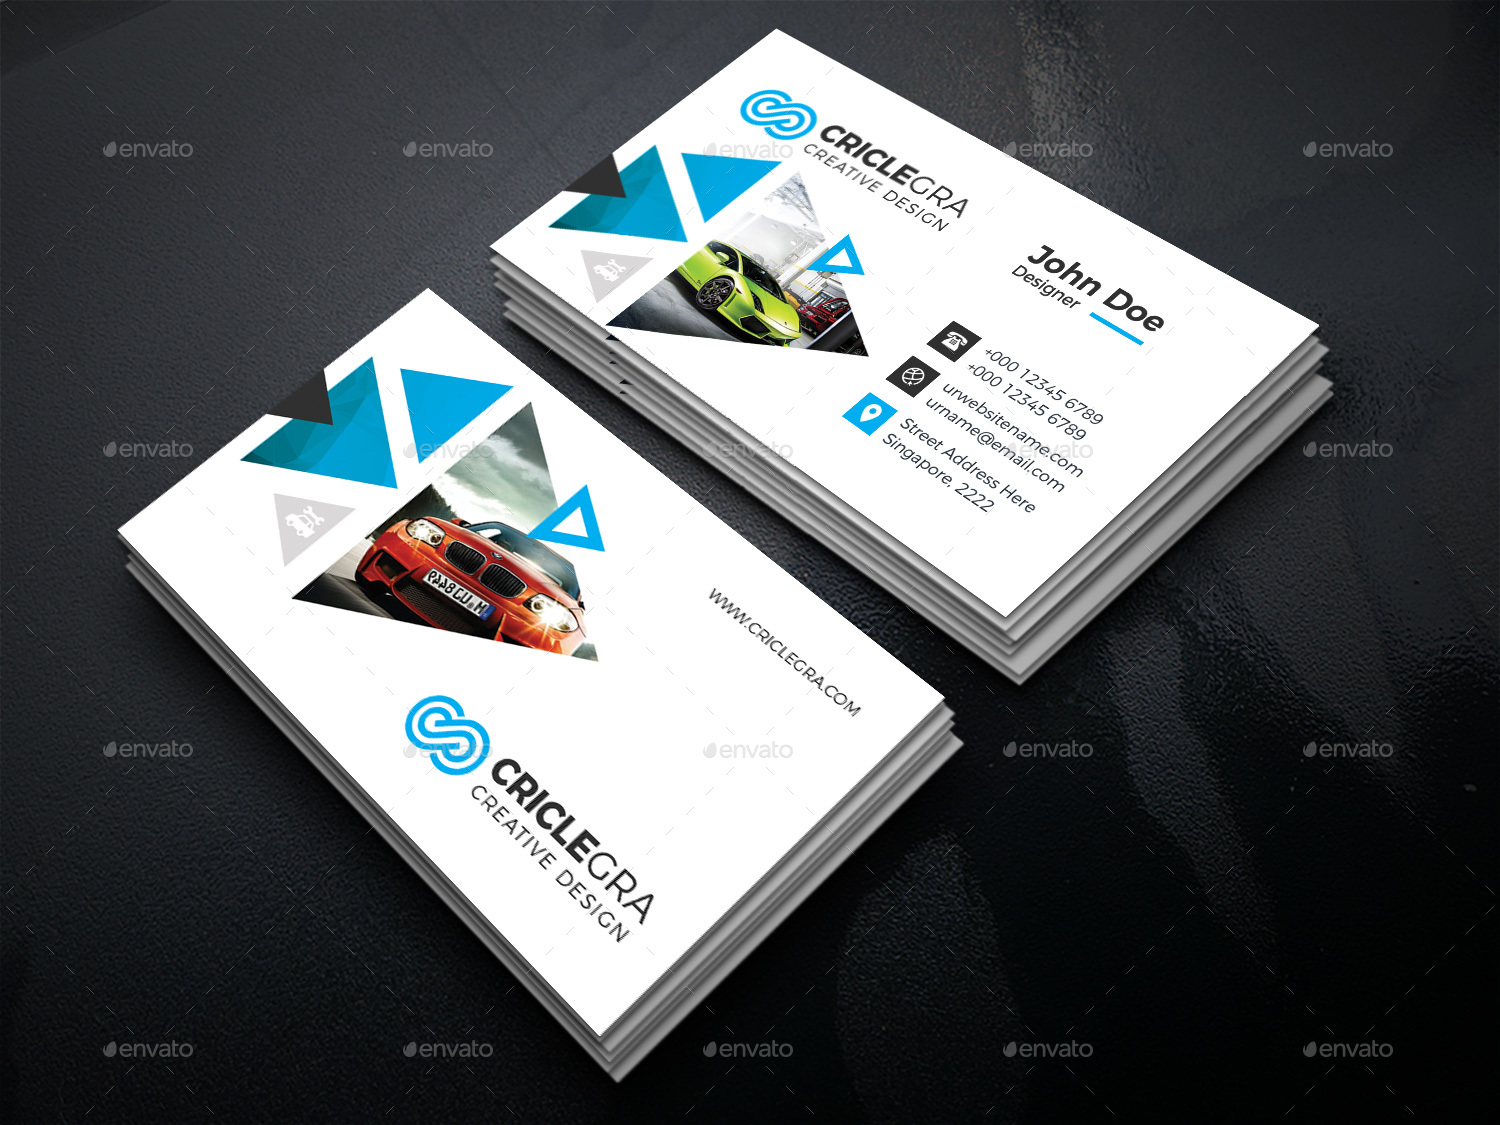 Car Servicing Business Card by generousart | GraphicRiver